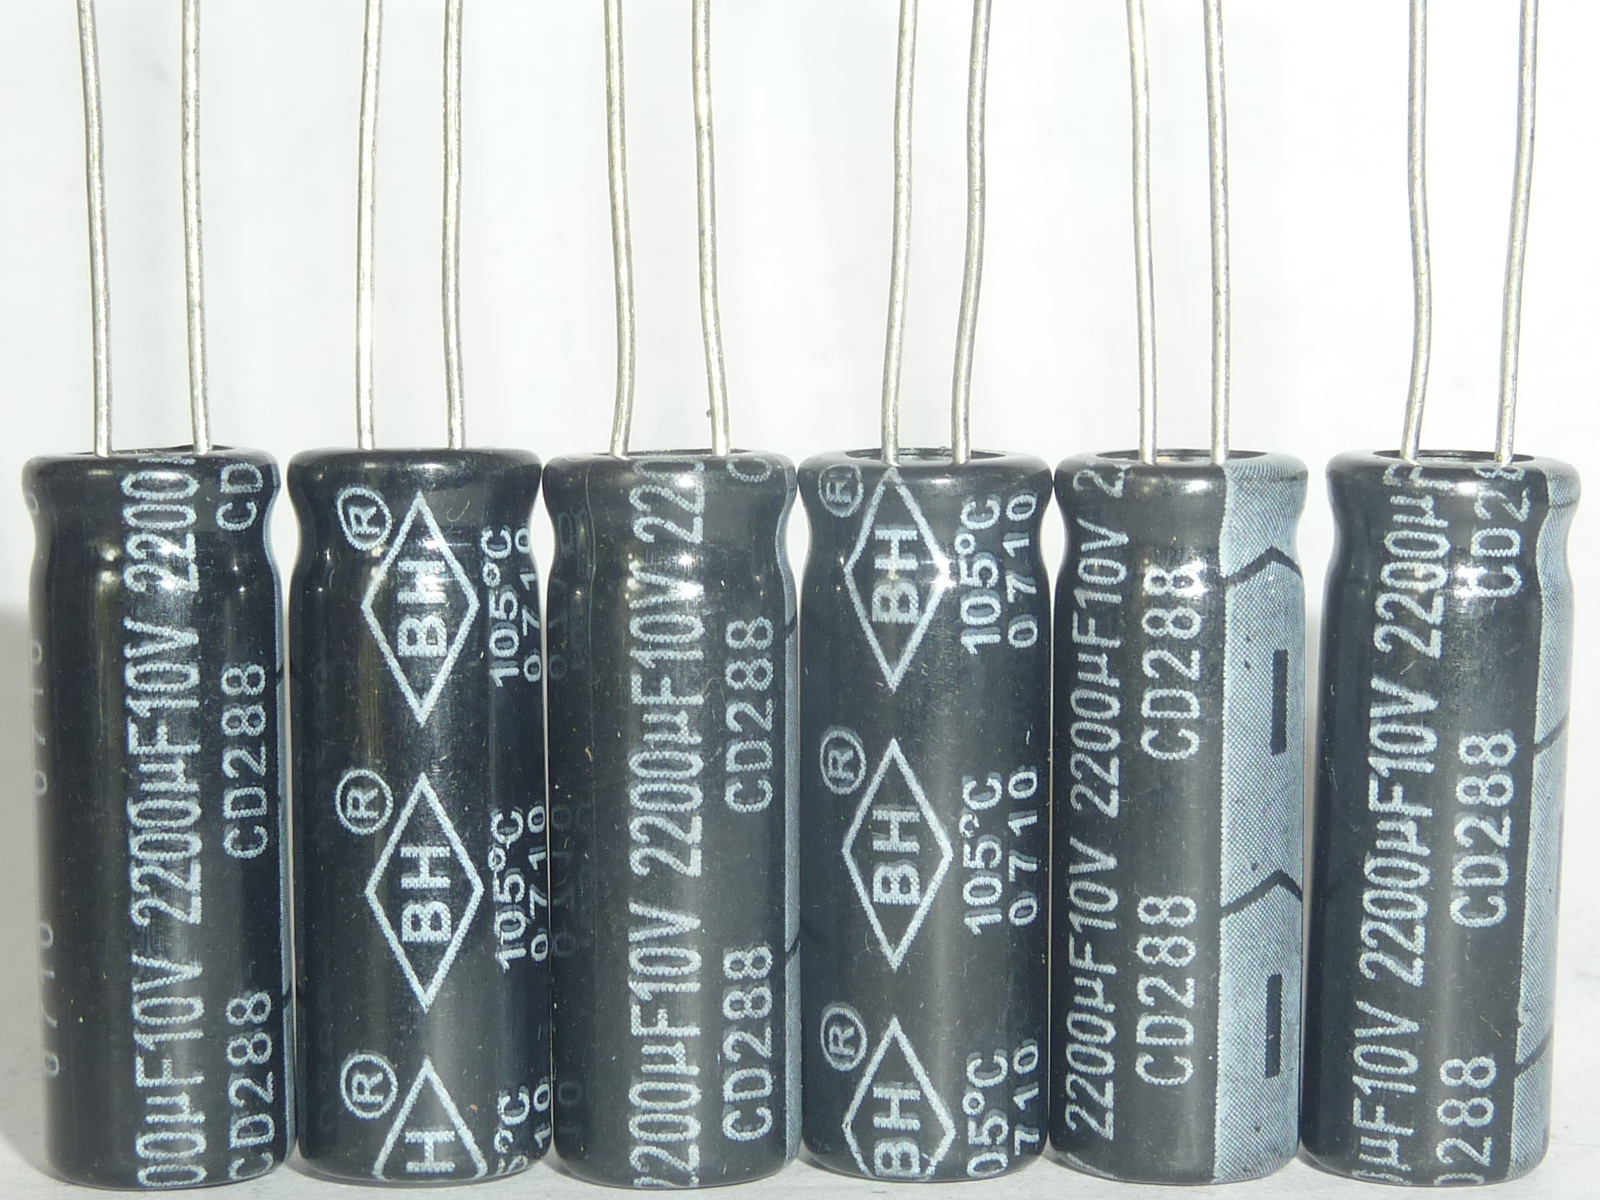 10pcs/100pcs 2200uF 10V BH CD288 8x25mm 10V2200uF Good Quality Aluminum Electrolytic Capacitor